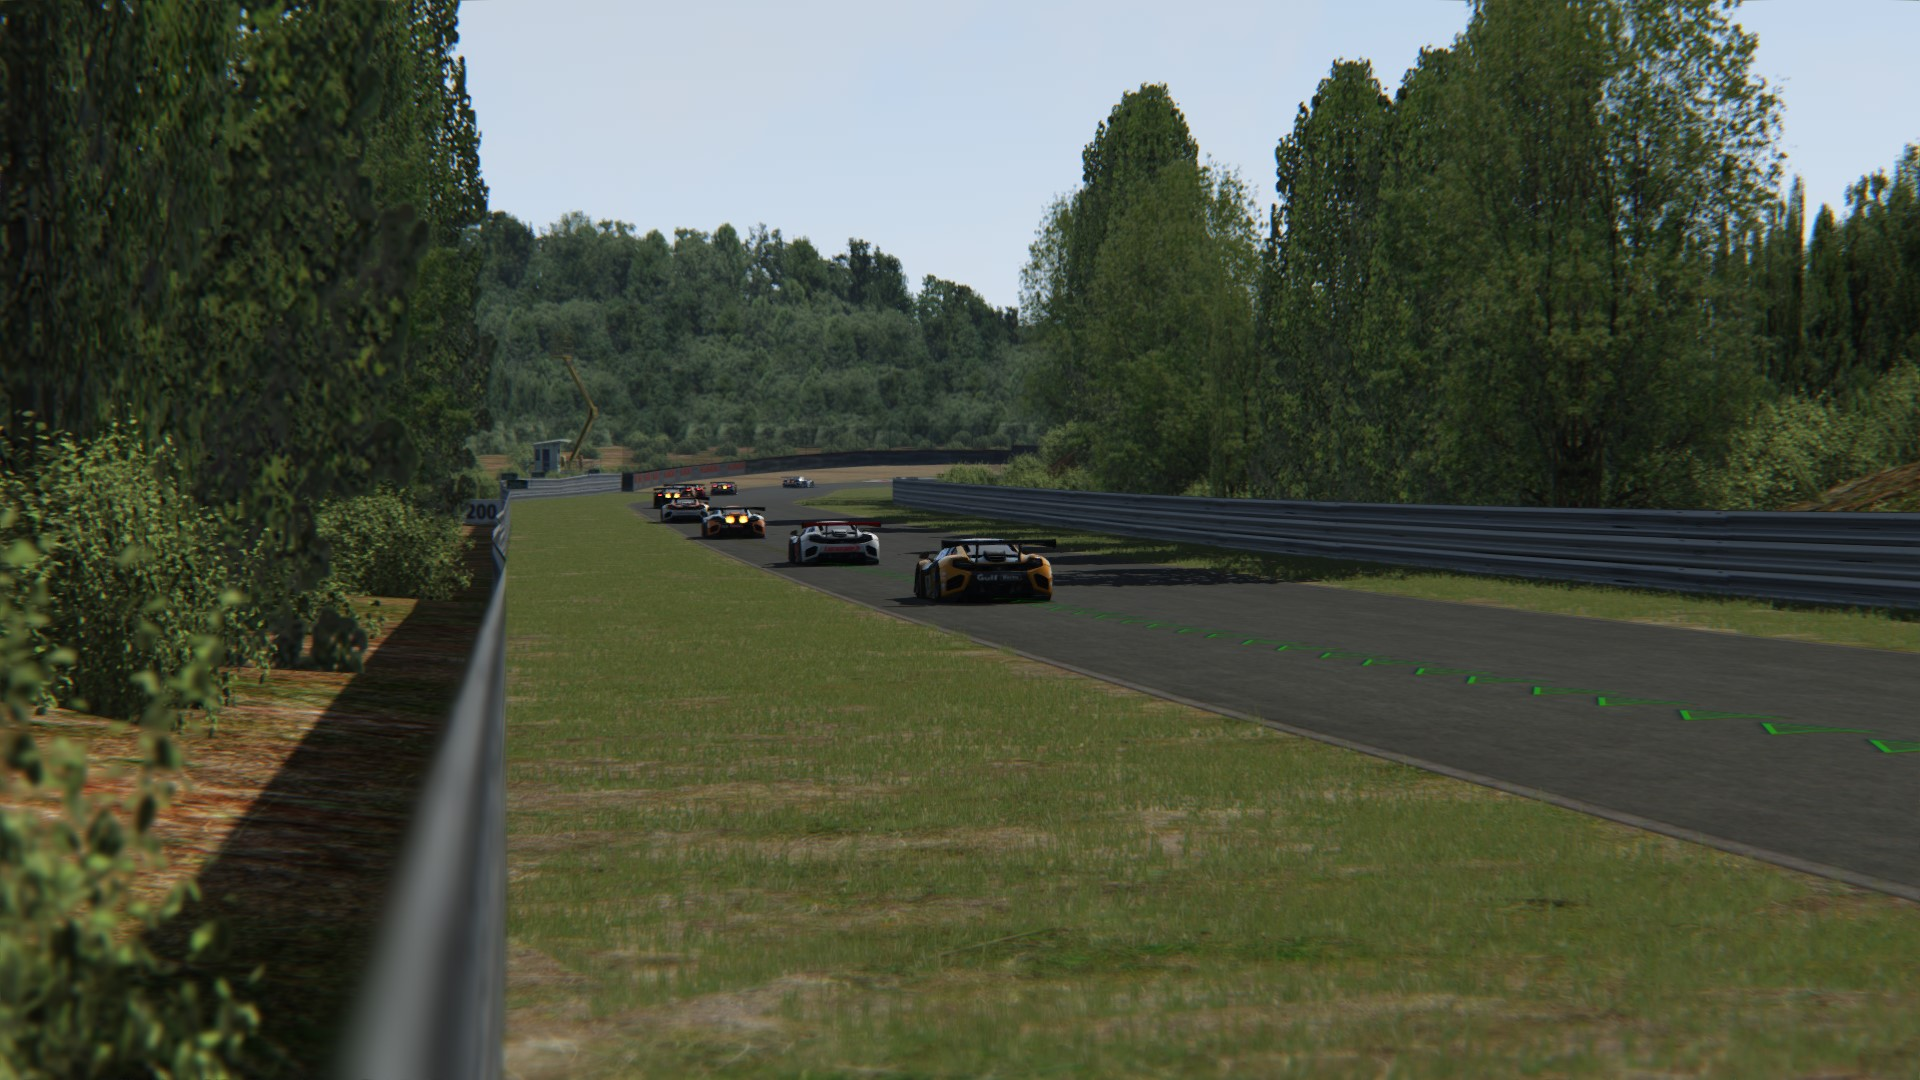 Screenshot_mclaren_mp412c_gt3_sportsland_sugo_7-4-116-10-34-7.jpg